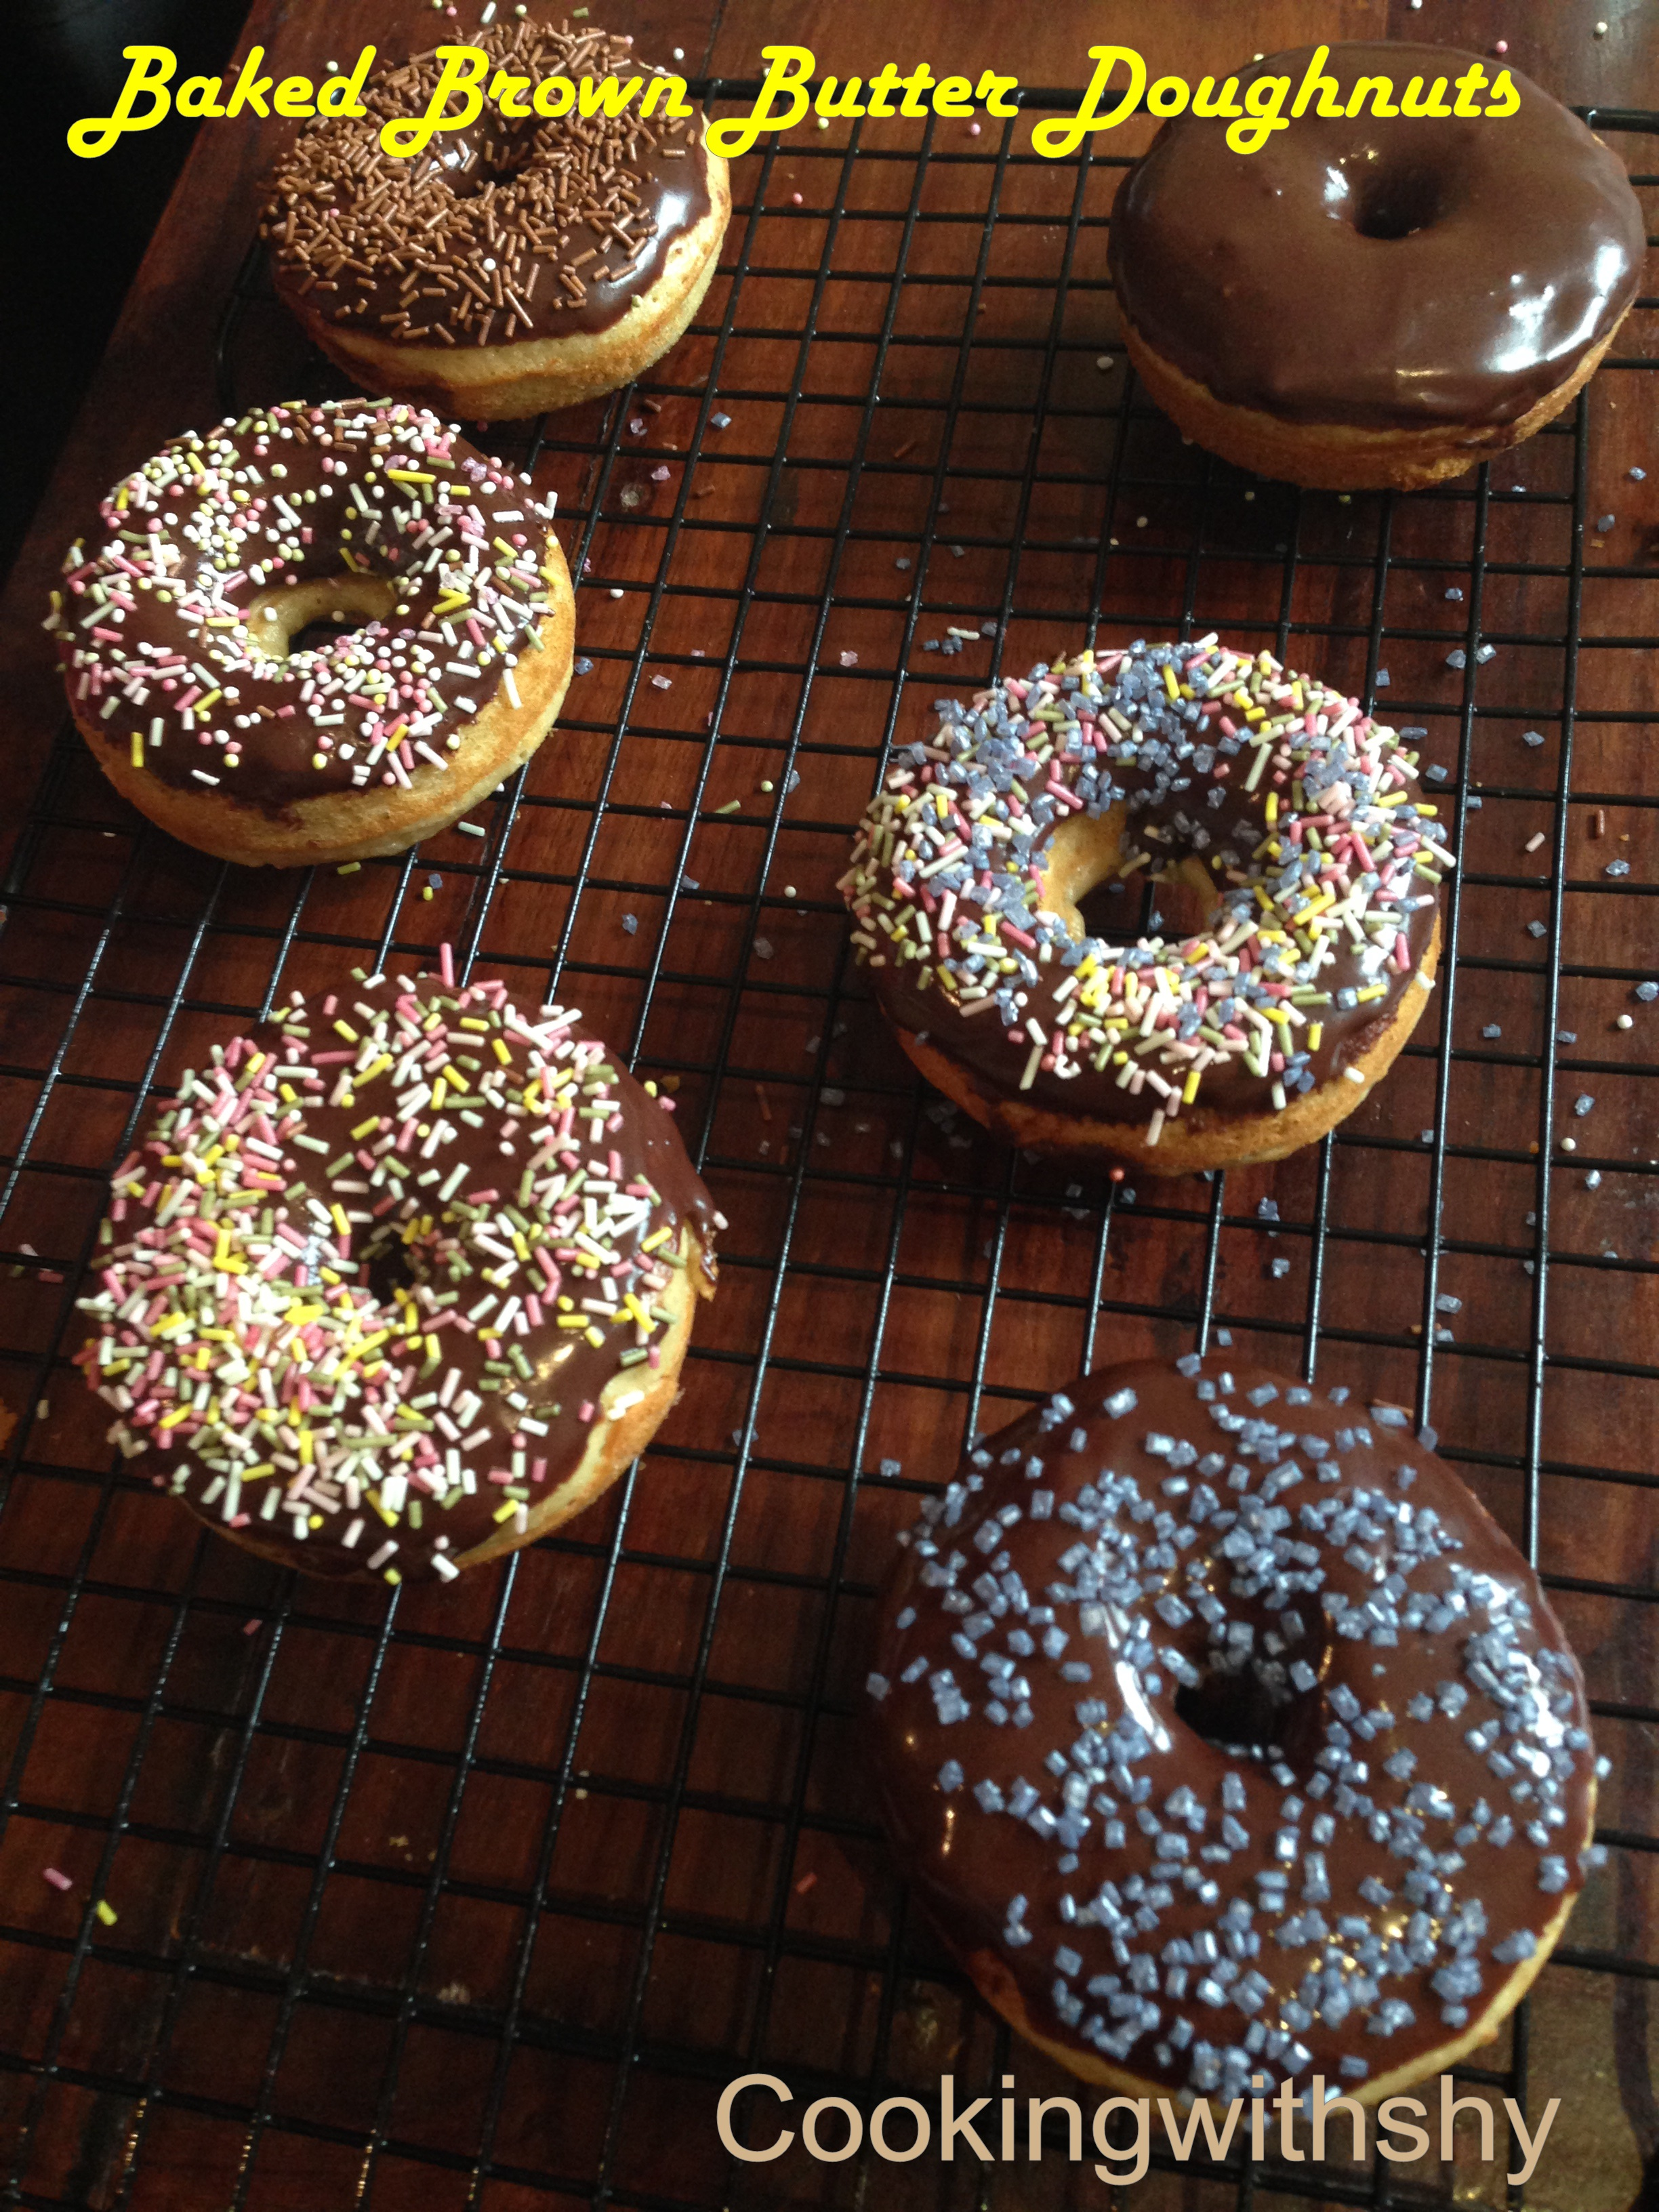 Baked Doughnuts with Chocolate Glaze